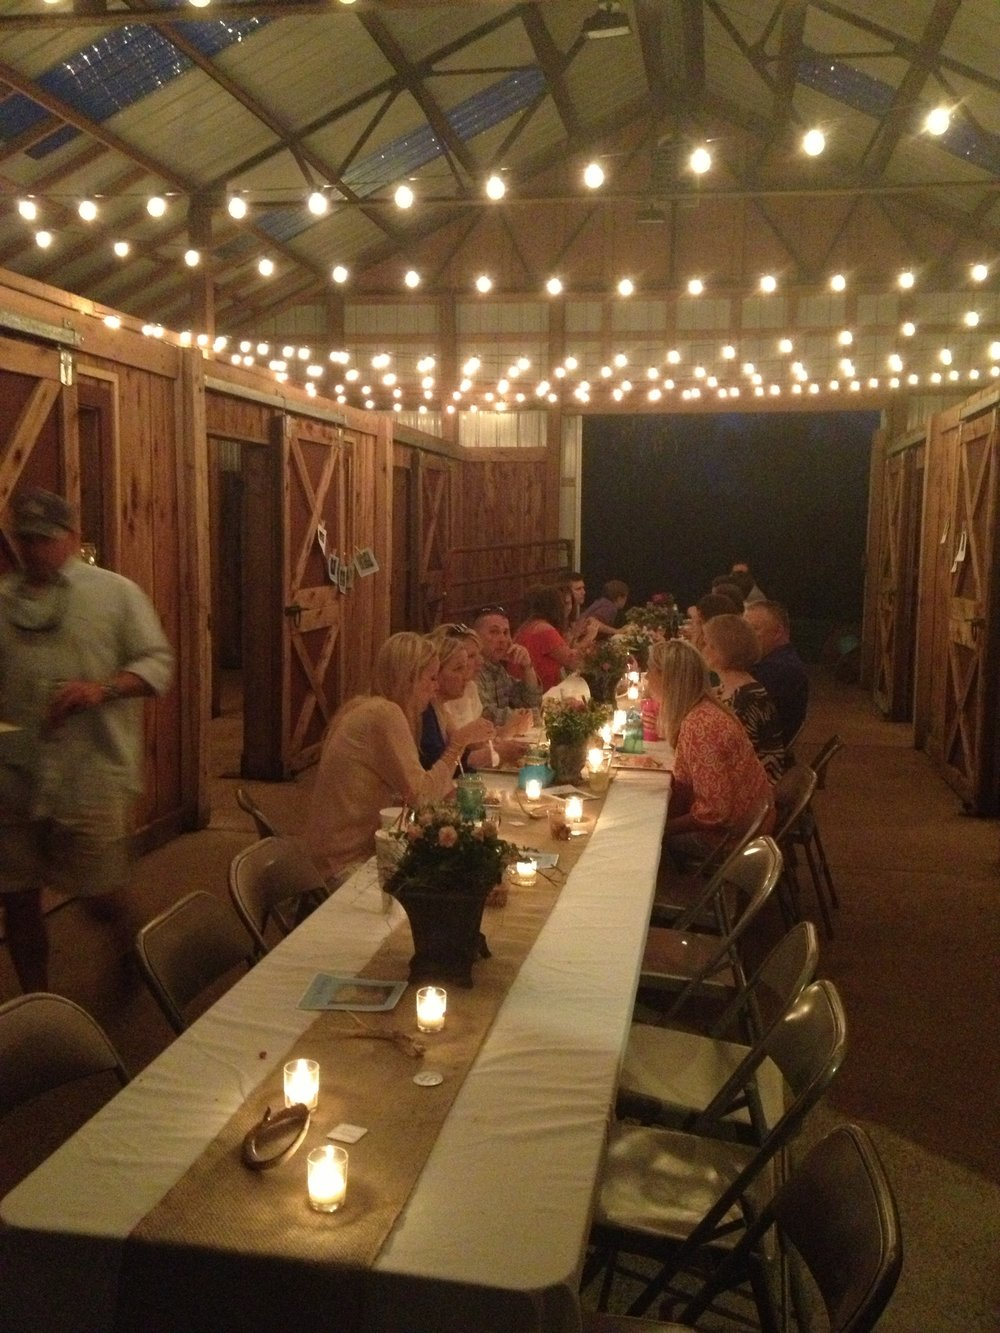 My friend Amy's 40th Surprise Birthday party in the Barn